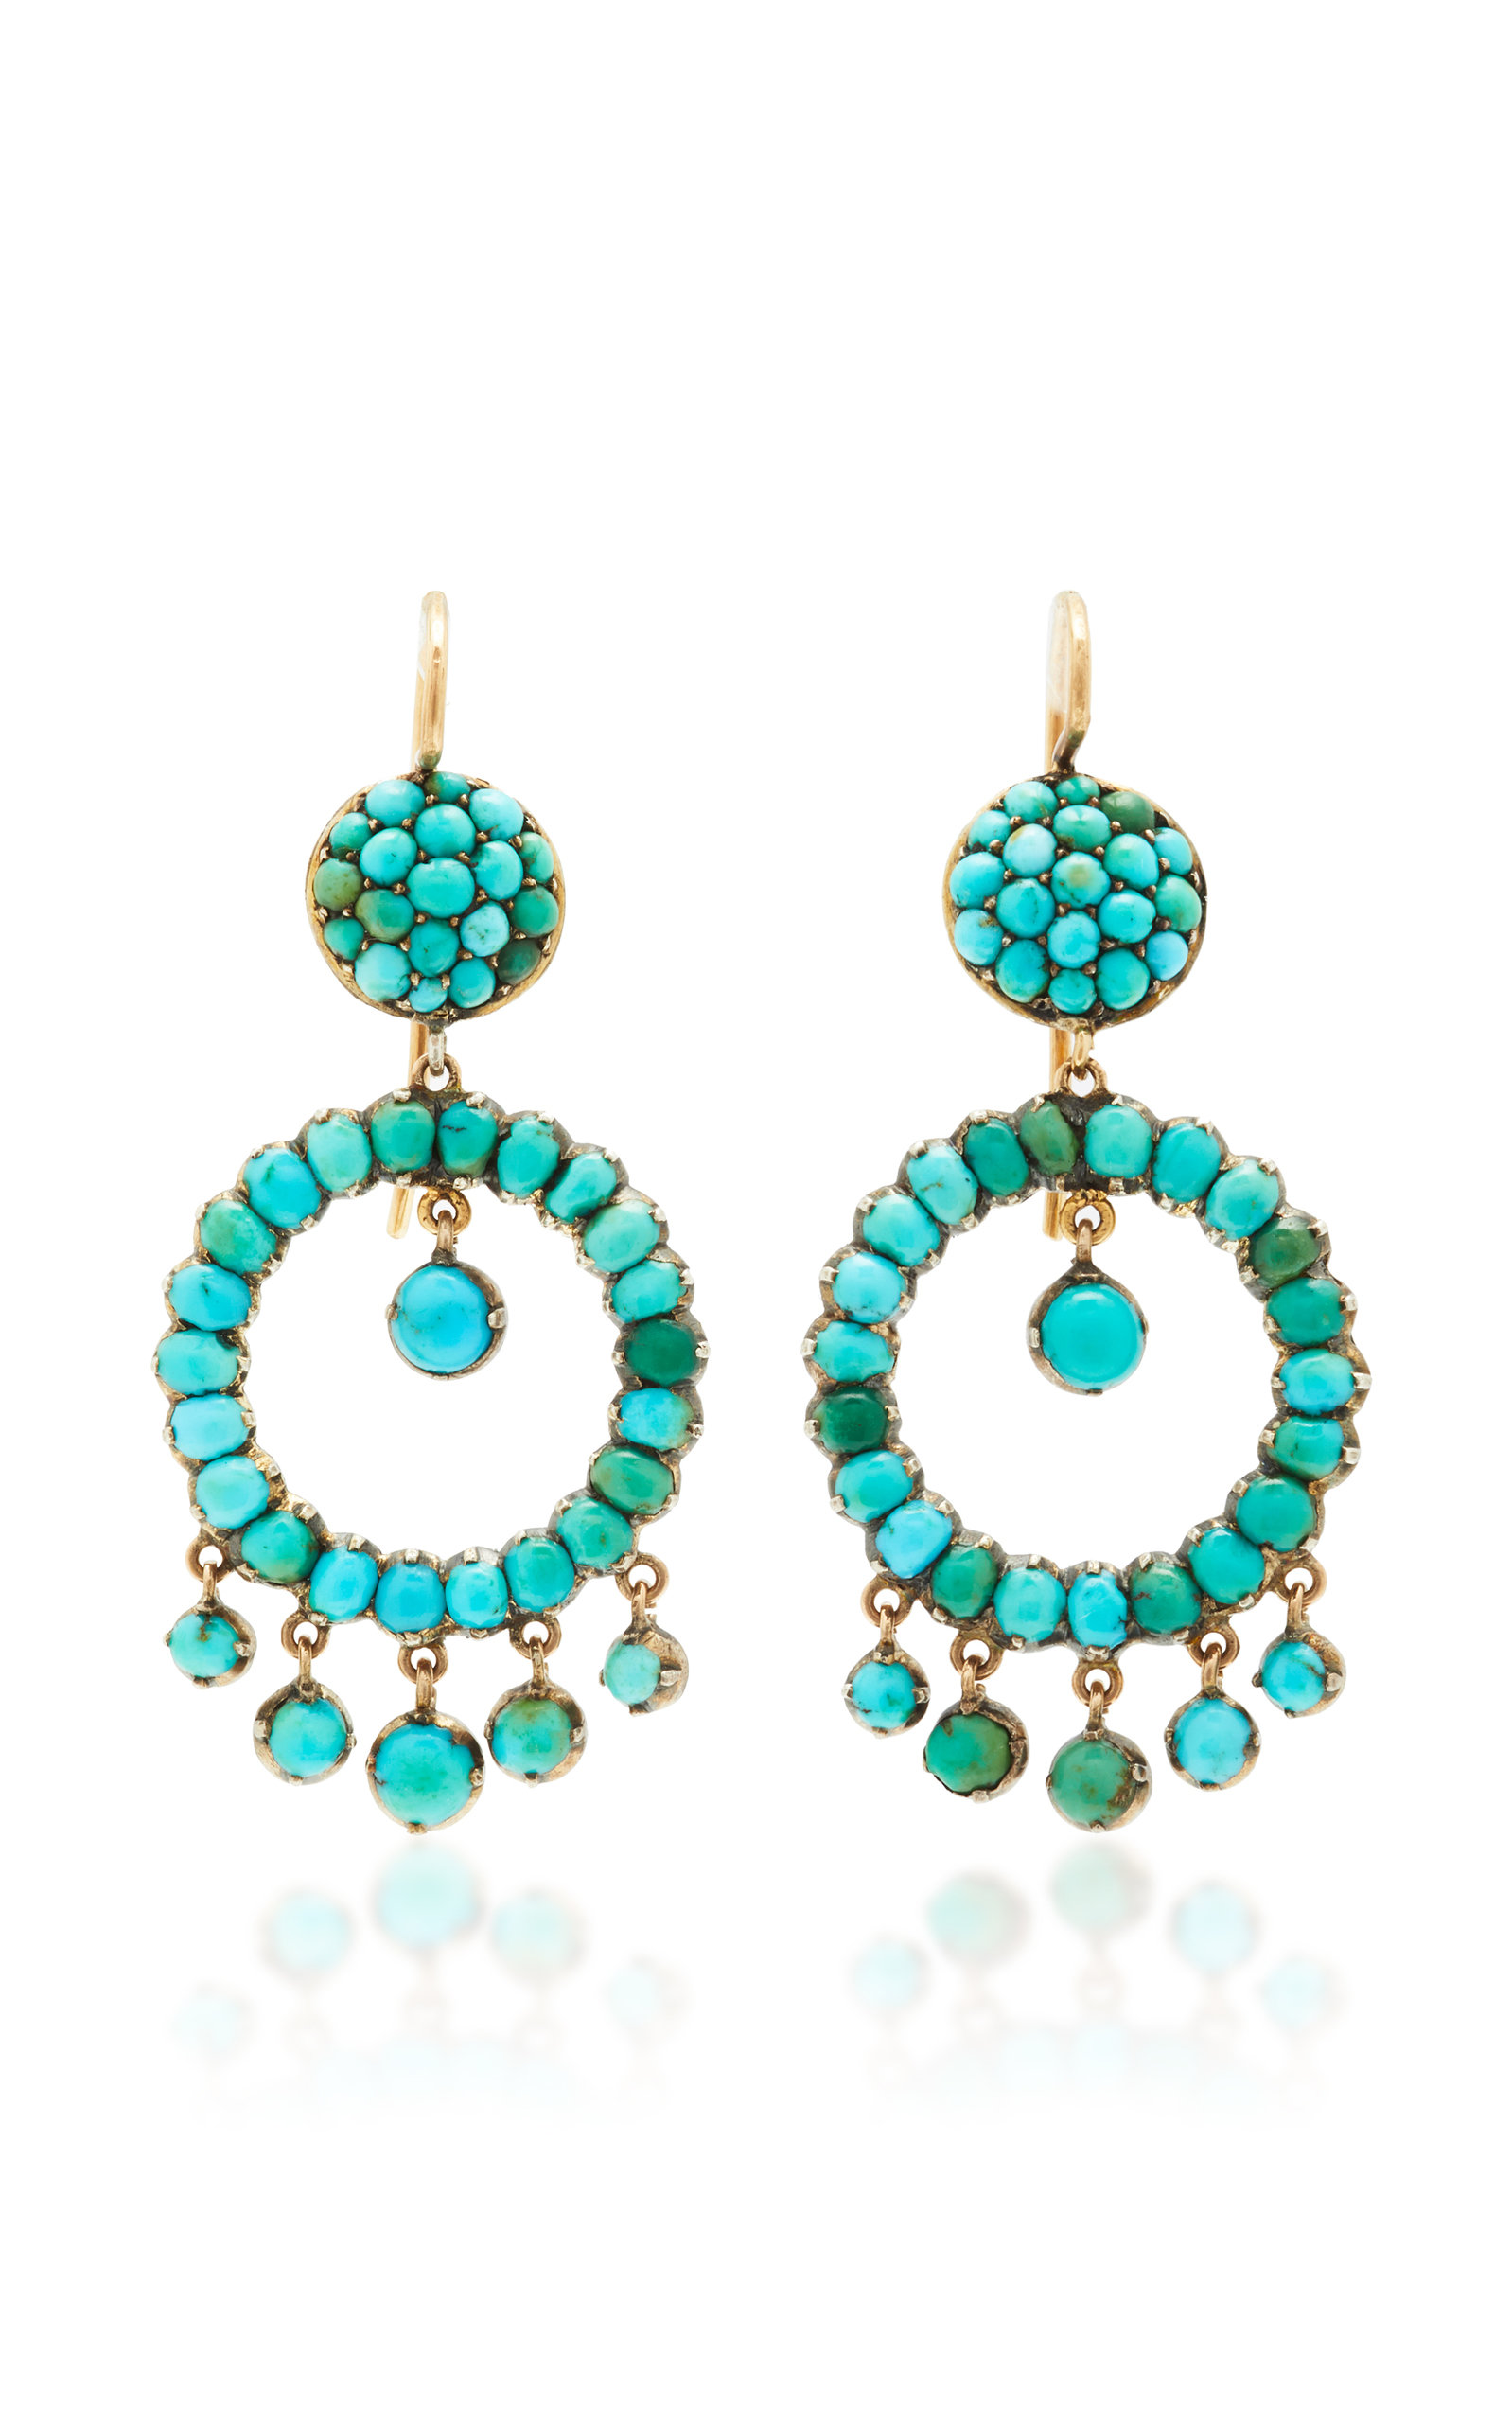 VELA ONE-OF-A-KIND VICTORIAN TURQUOISE PAVE EARRINGS